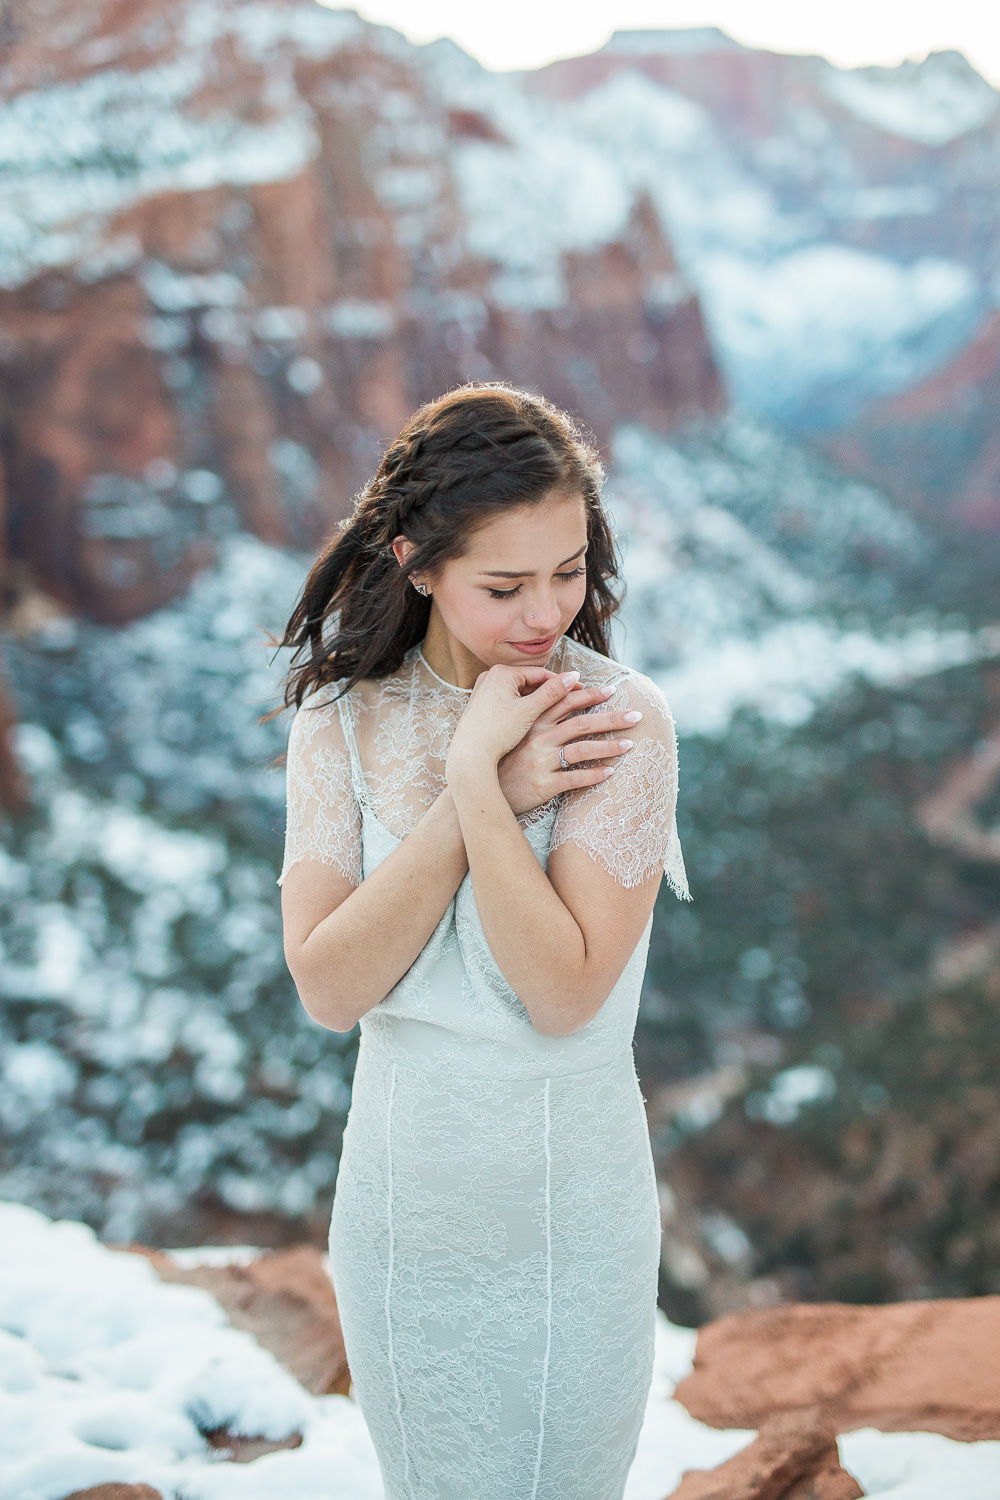 Zion National Park wedding photography